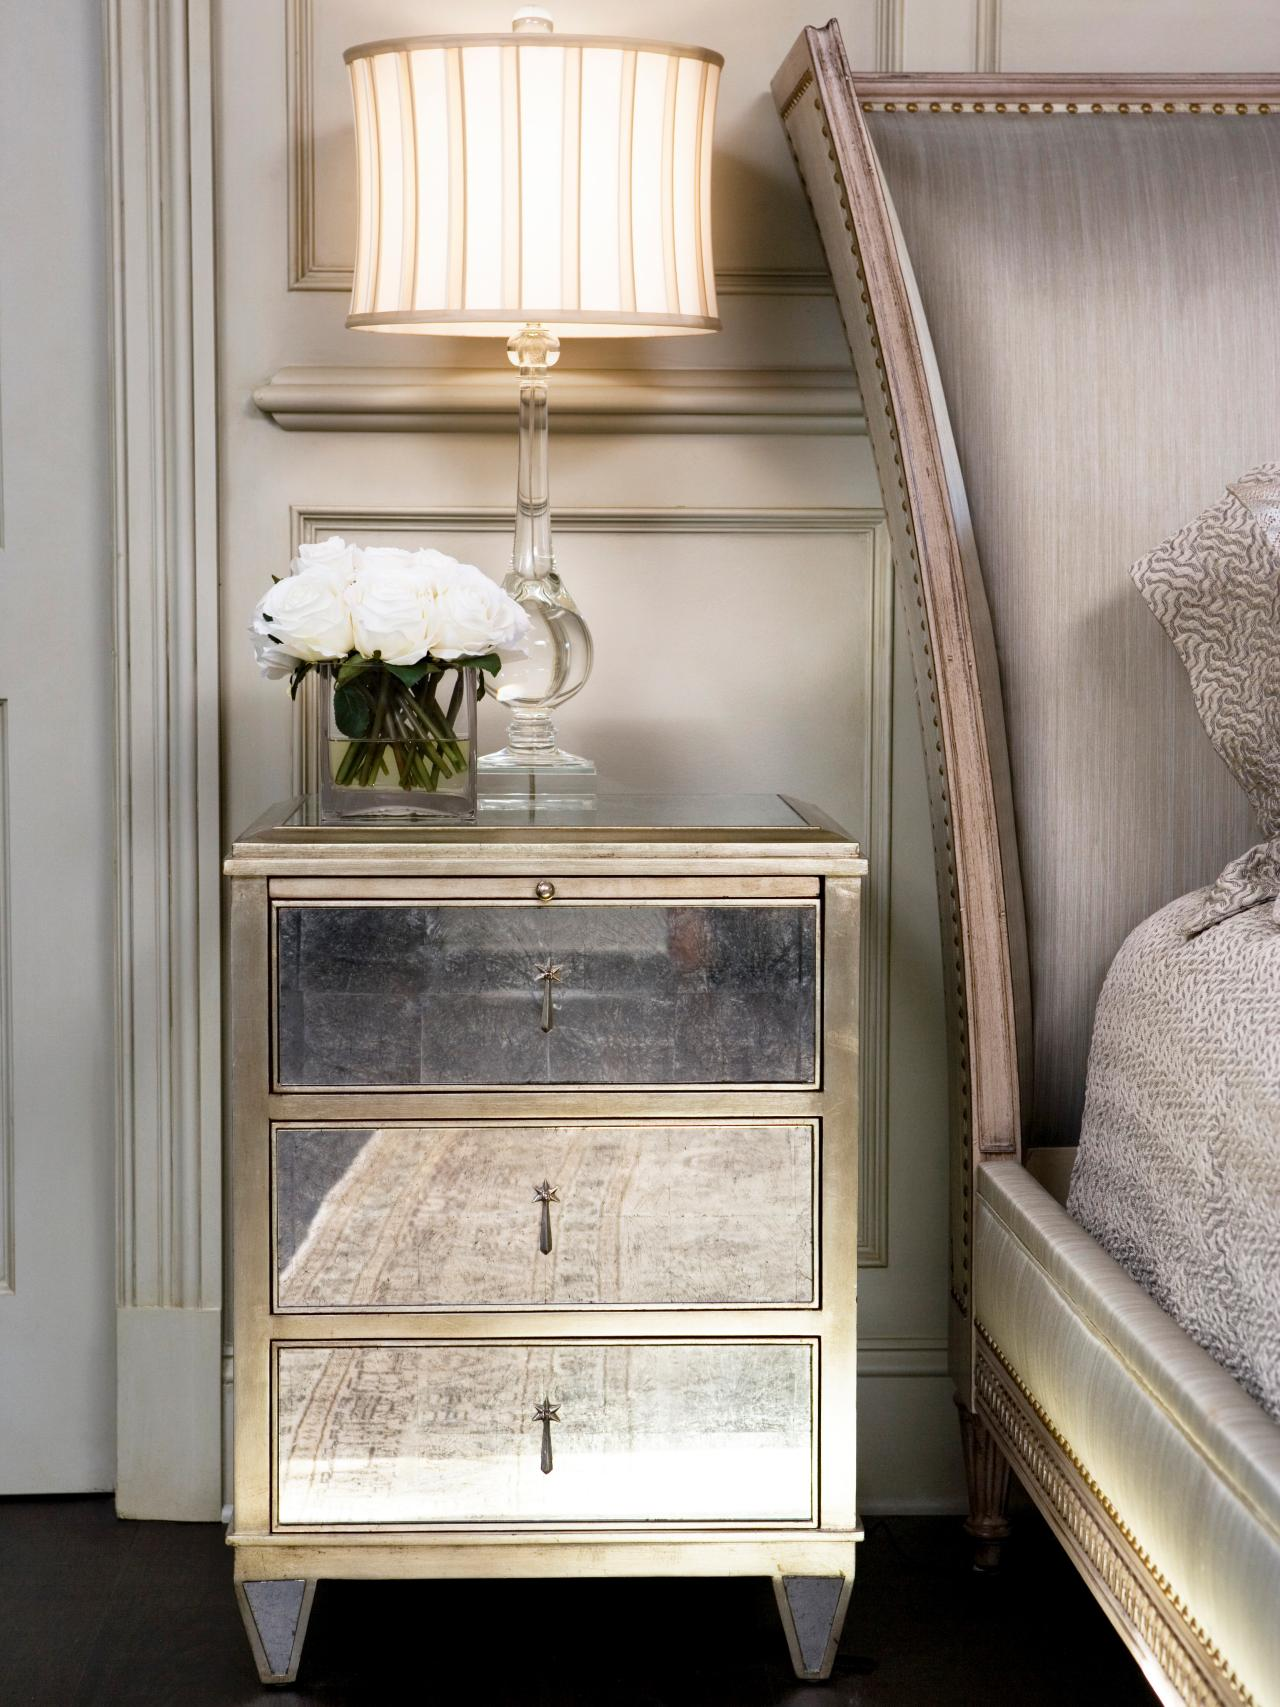 splendid unique nightstand side table height lamps lamp saic marble astonishing sling pink terrazzo round mirrored room decor designs scandi bedside living target kmart metal